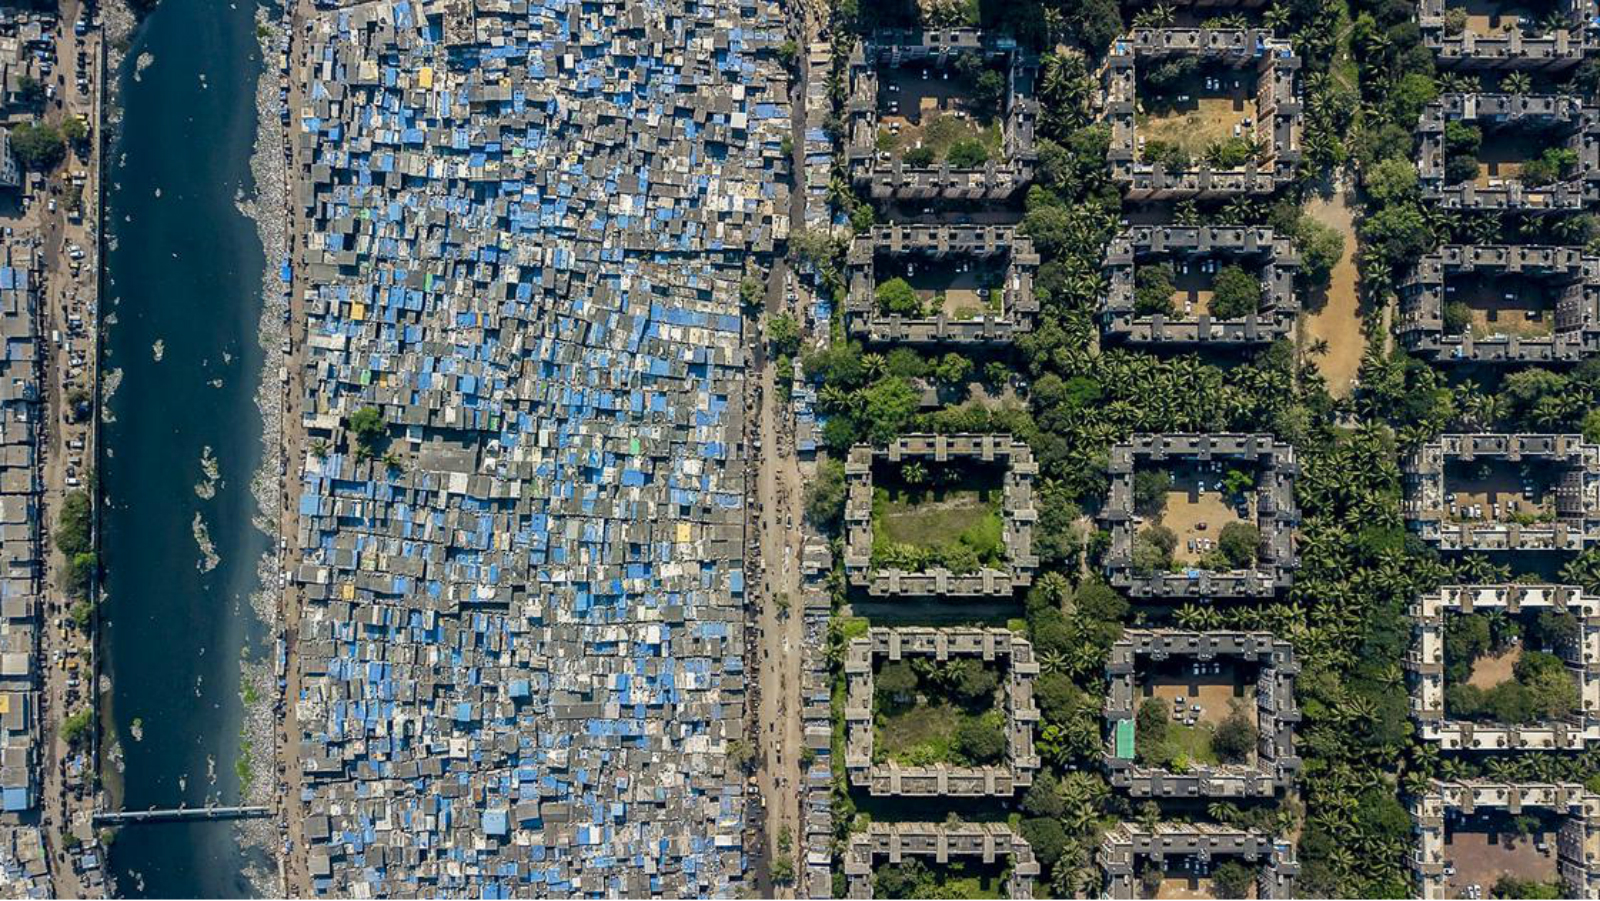 Drone photos capture the staggering inequality in Mumbai